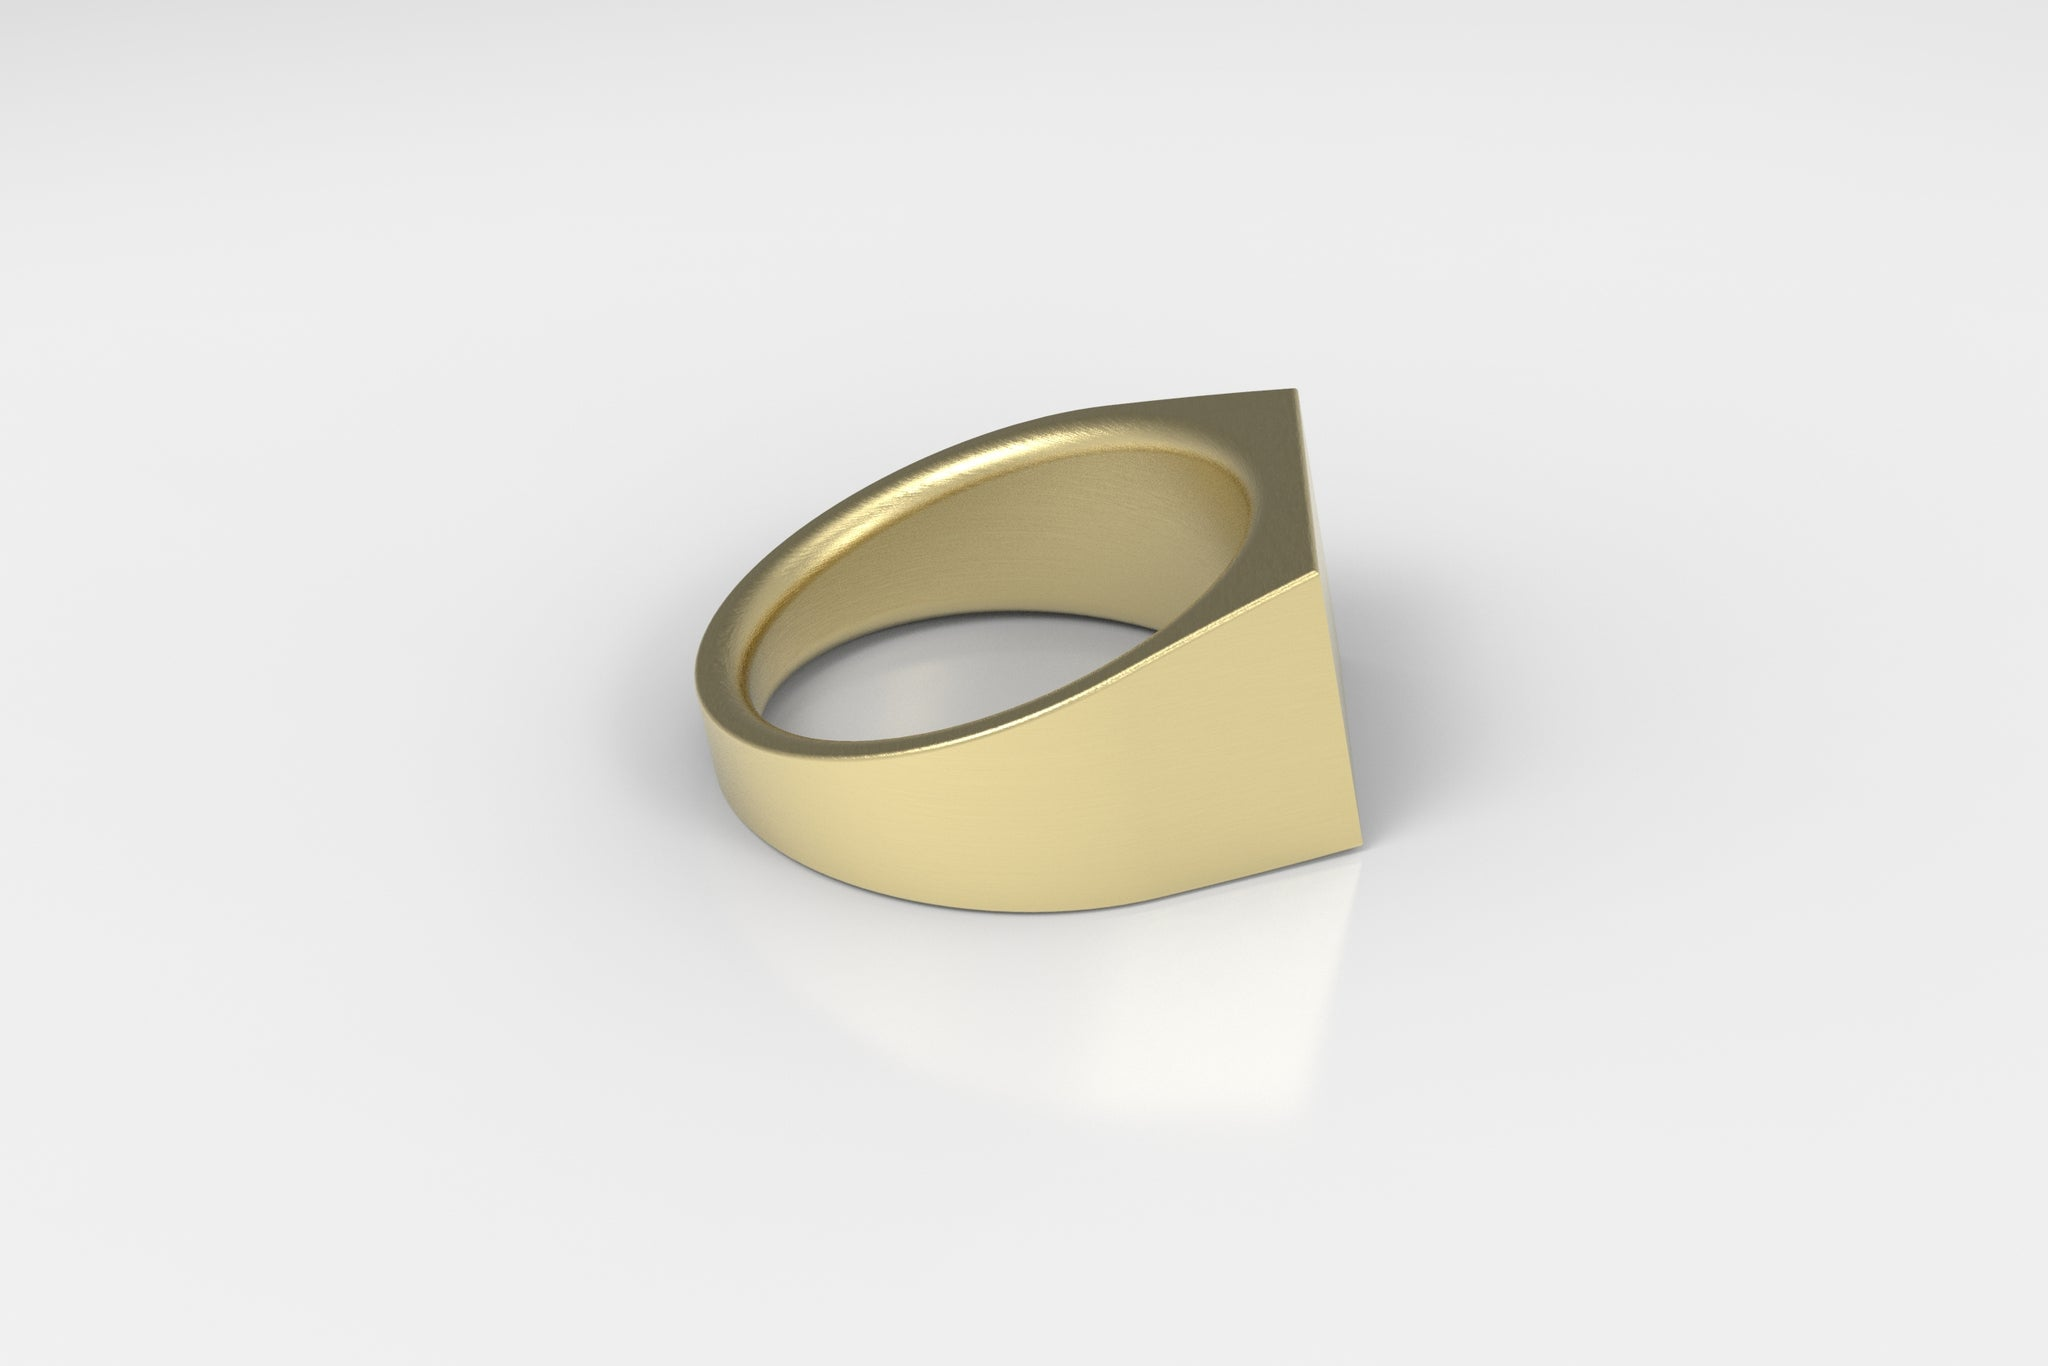 artifact 1 // 12mm Signet Ring // Brass